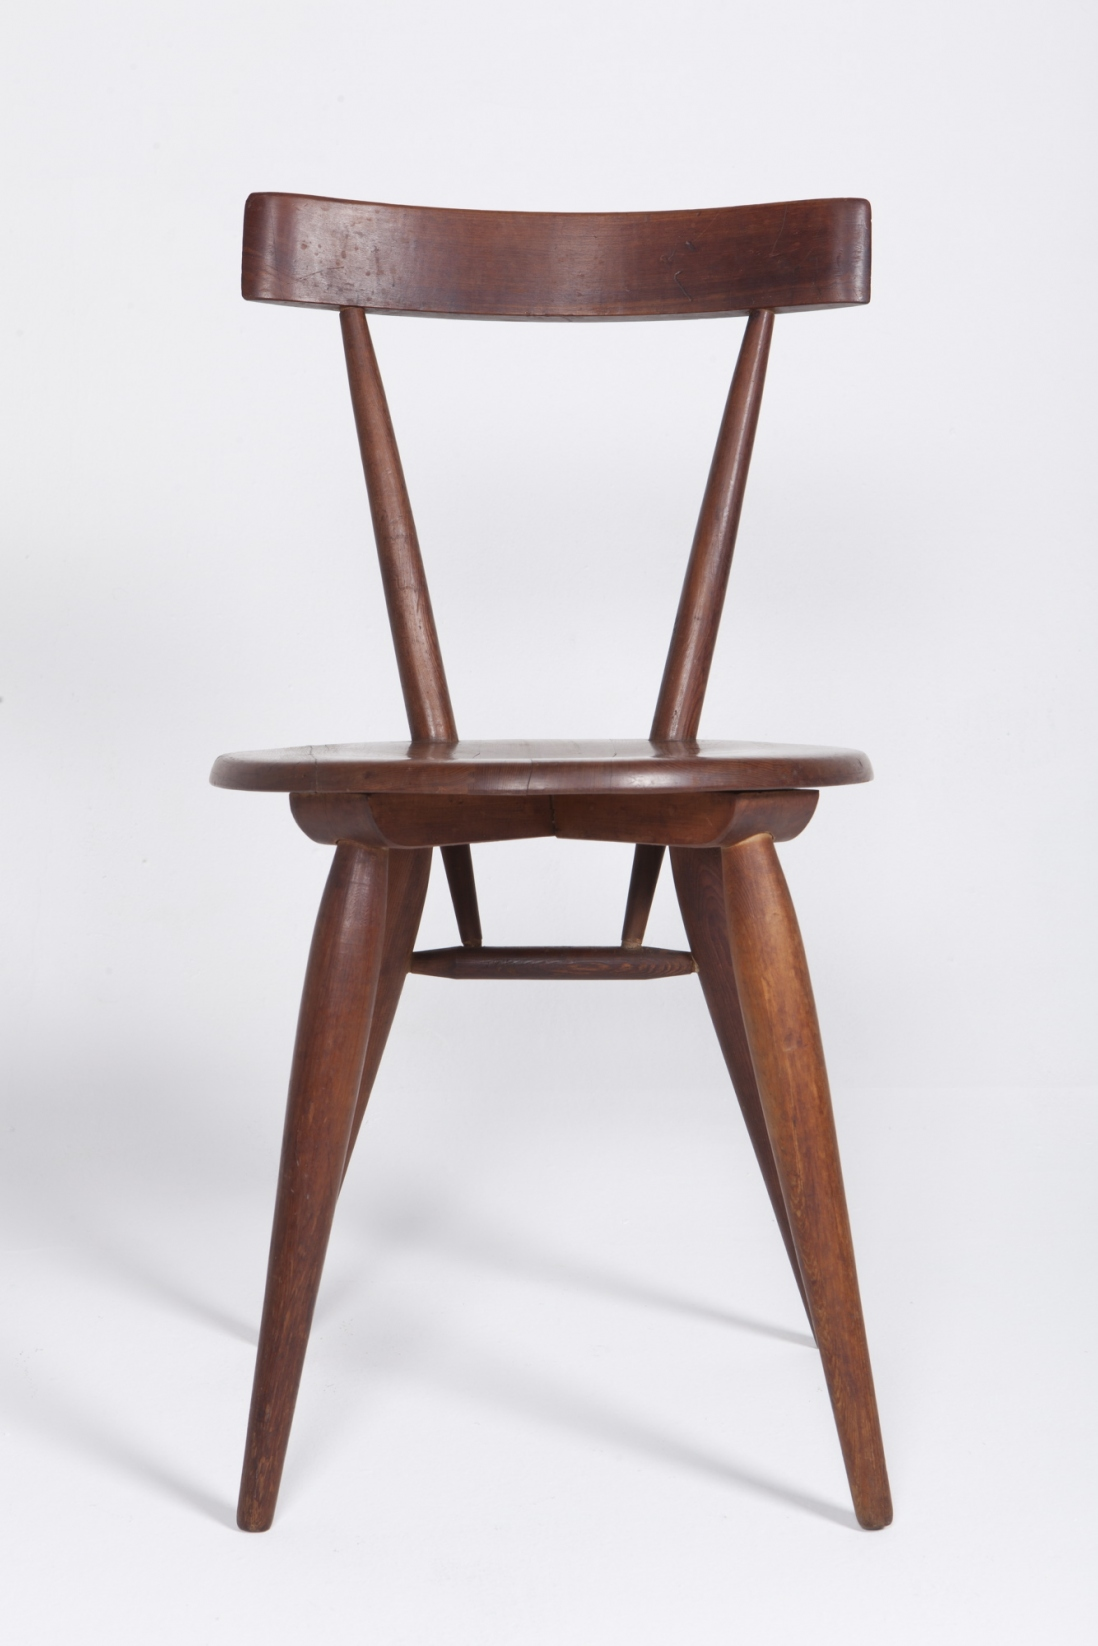 Marvelous Flat Pack Modernist Chair Sydney Living Museums Pabps2019 Chair Design Images Pabps2019Com